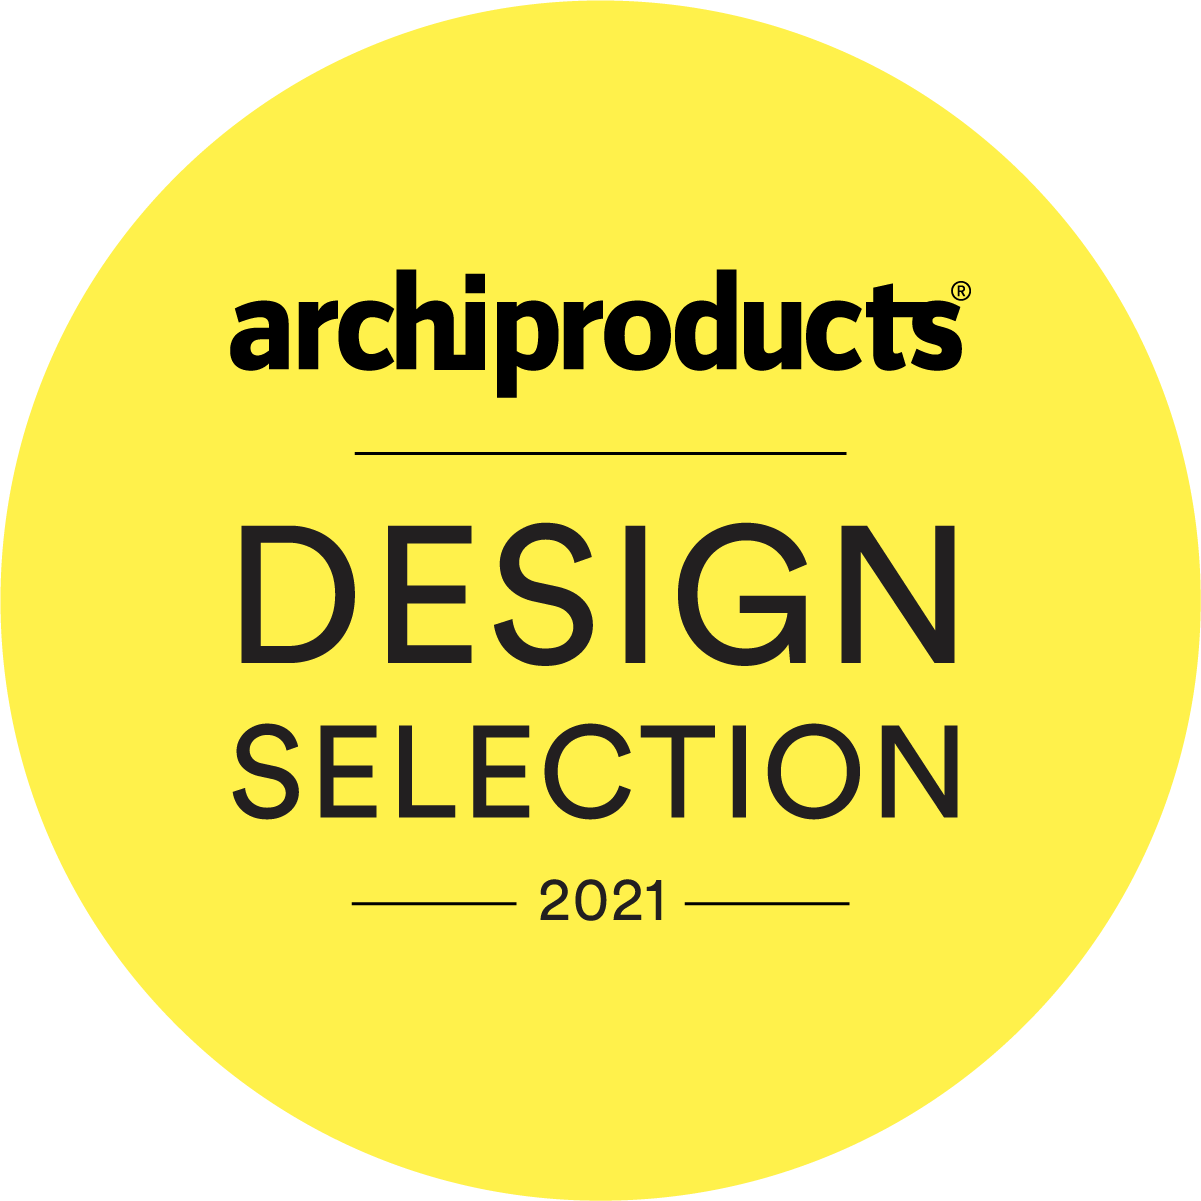 Archiproduct Design Selection badge